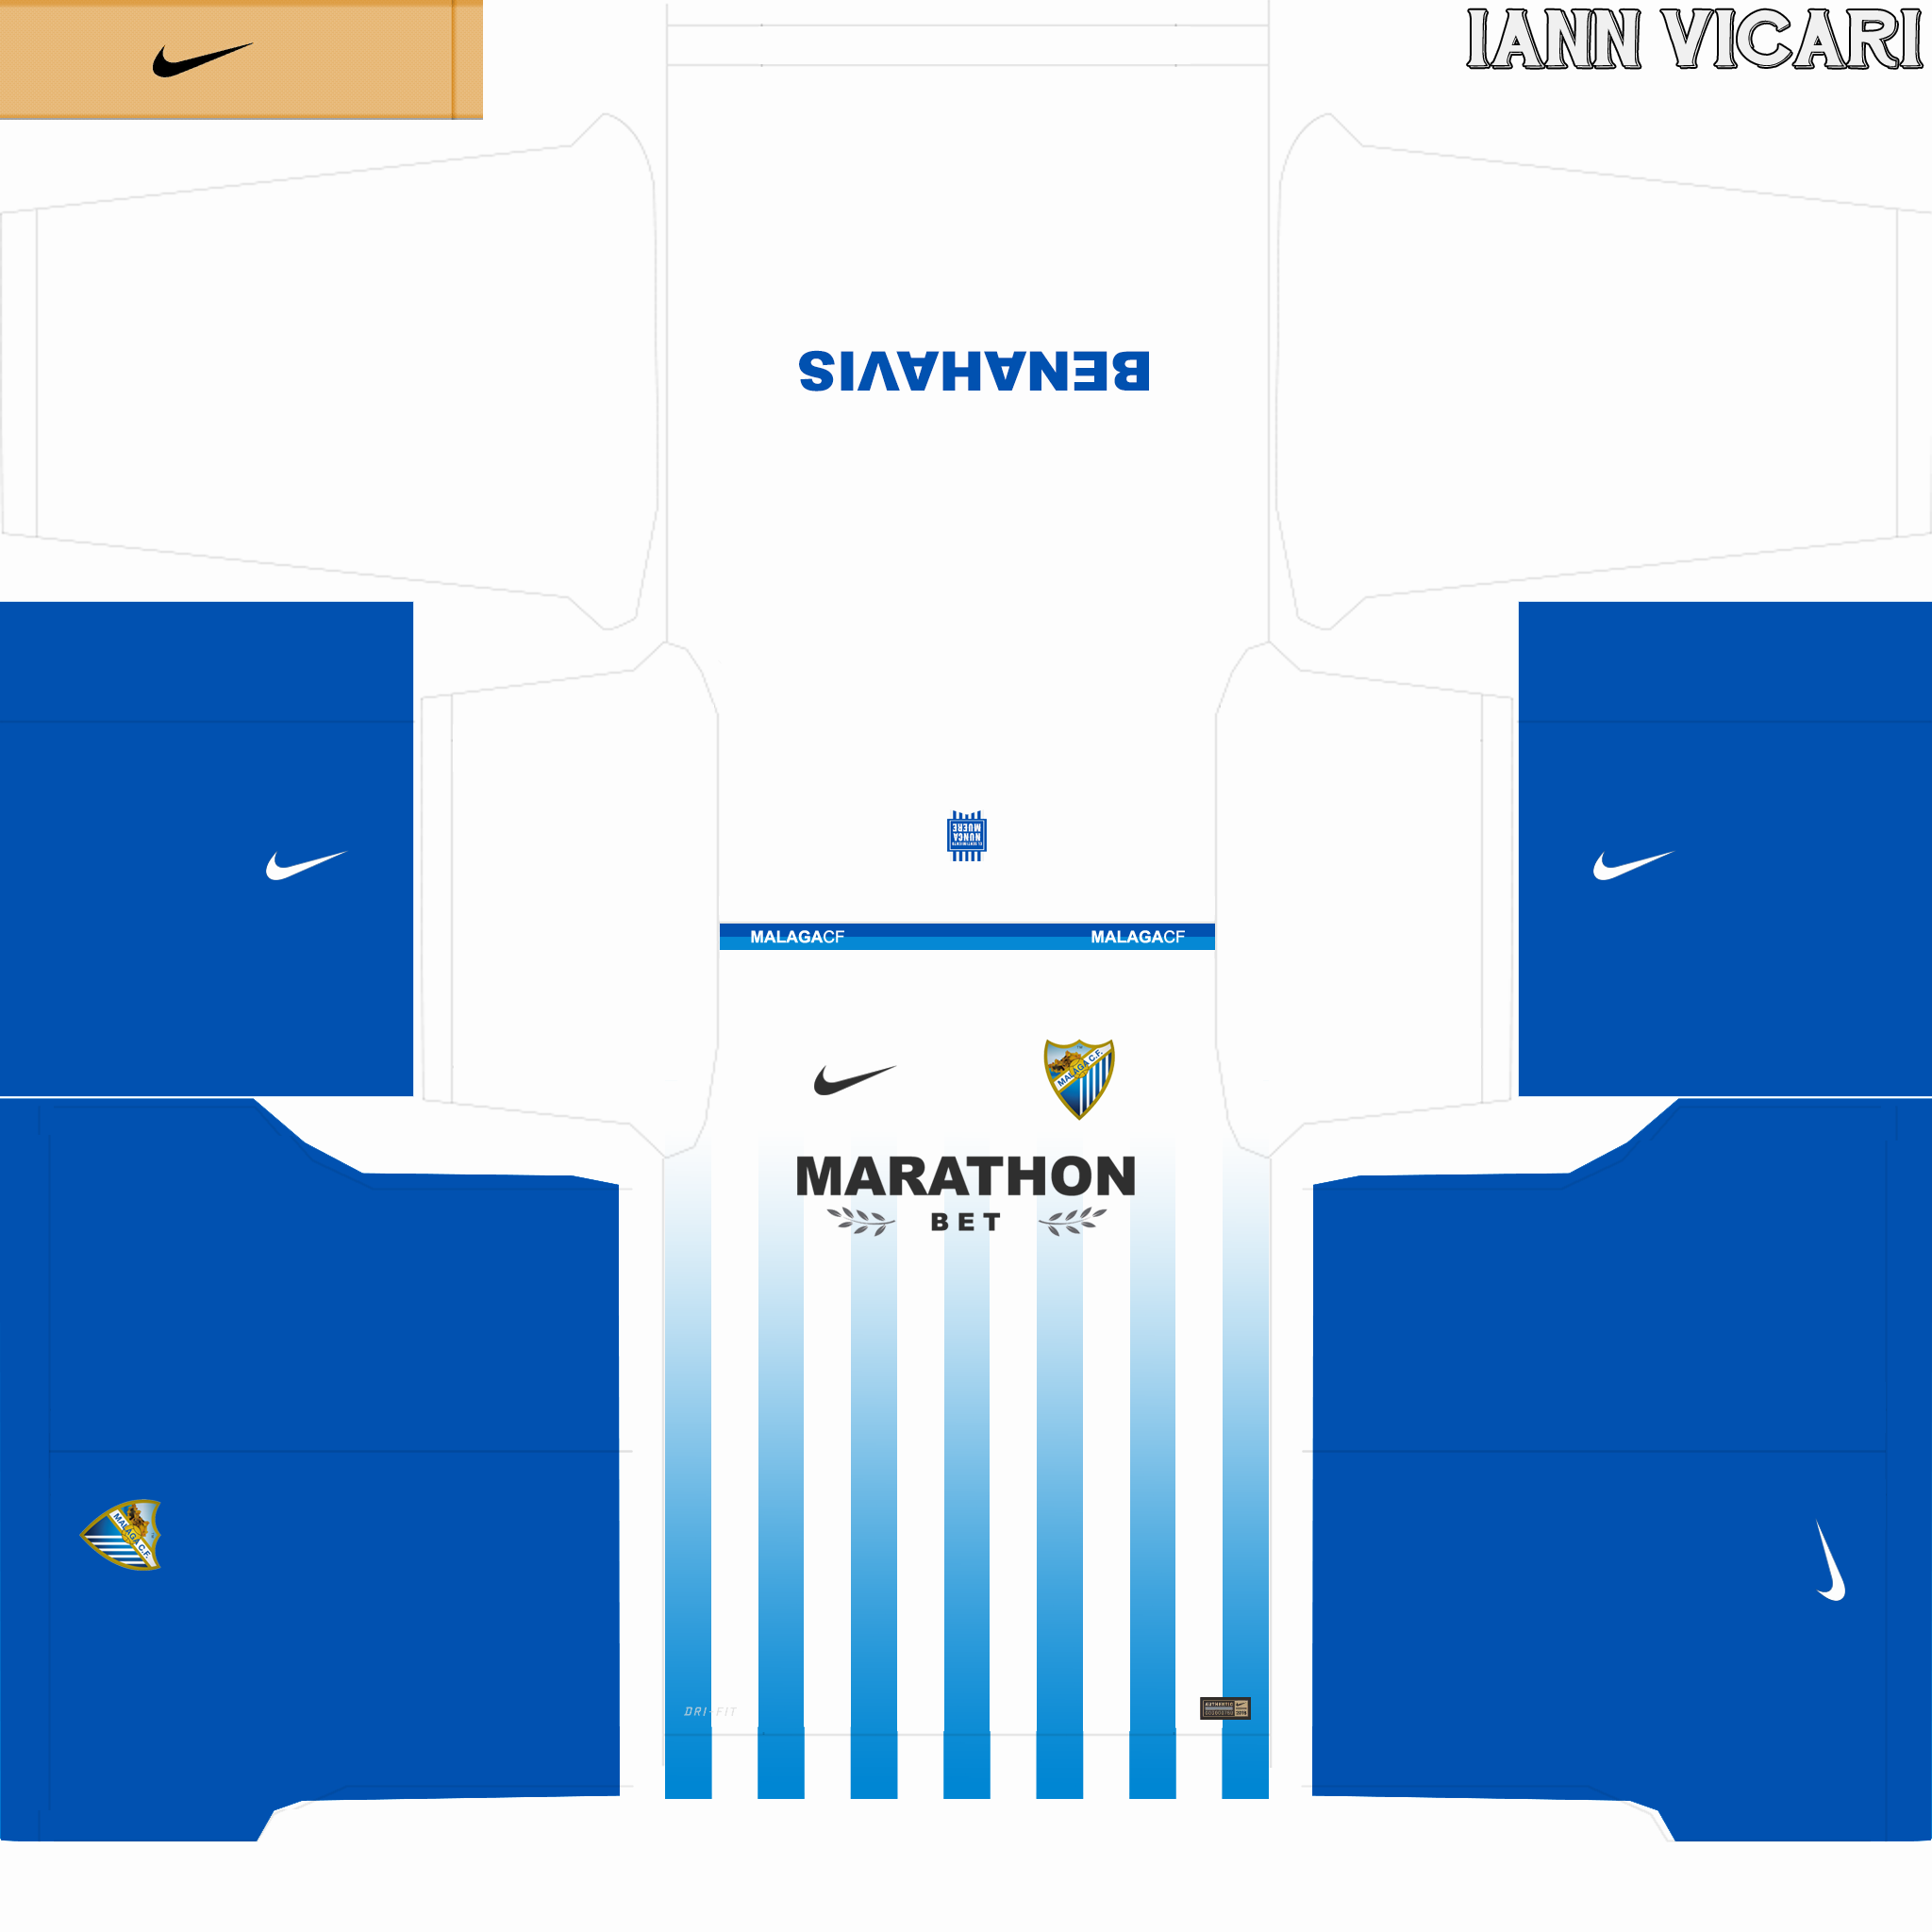 Pes kits 2017 pictures free download - This Image Has Been Resized Click This Bar To View The Full Image The Original Image Is Sized 2048x2048